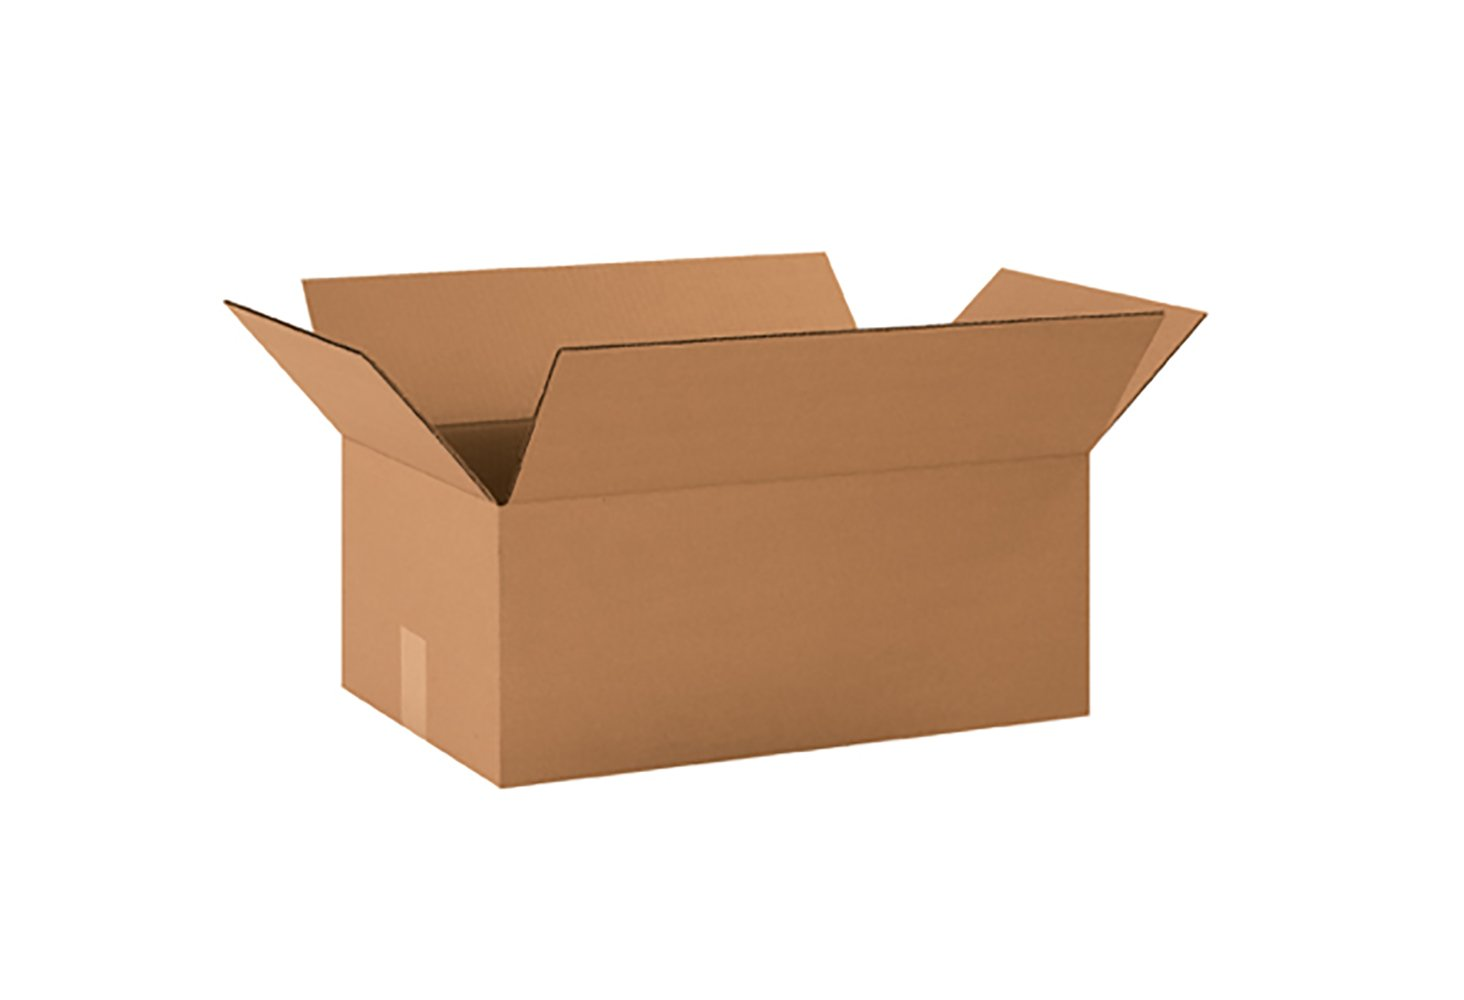 20 Length 12 Width 6 Height Brown RetailSource B201206CB25 Corrugated Box Pack of 25 6 Height 12 Width 20 Length